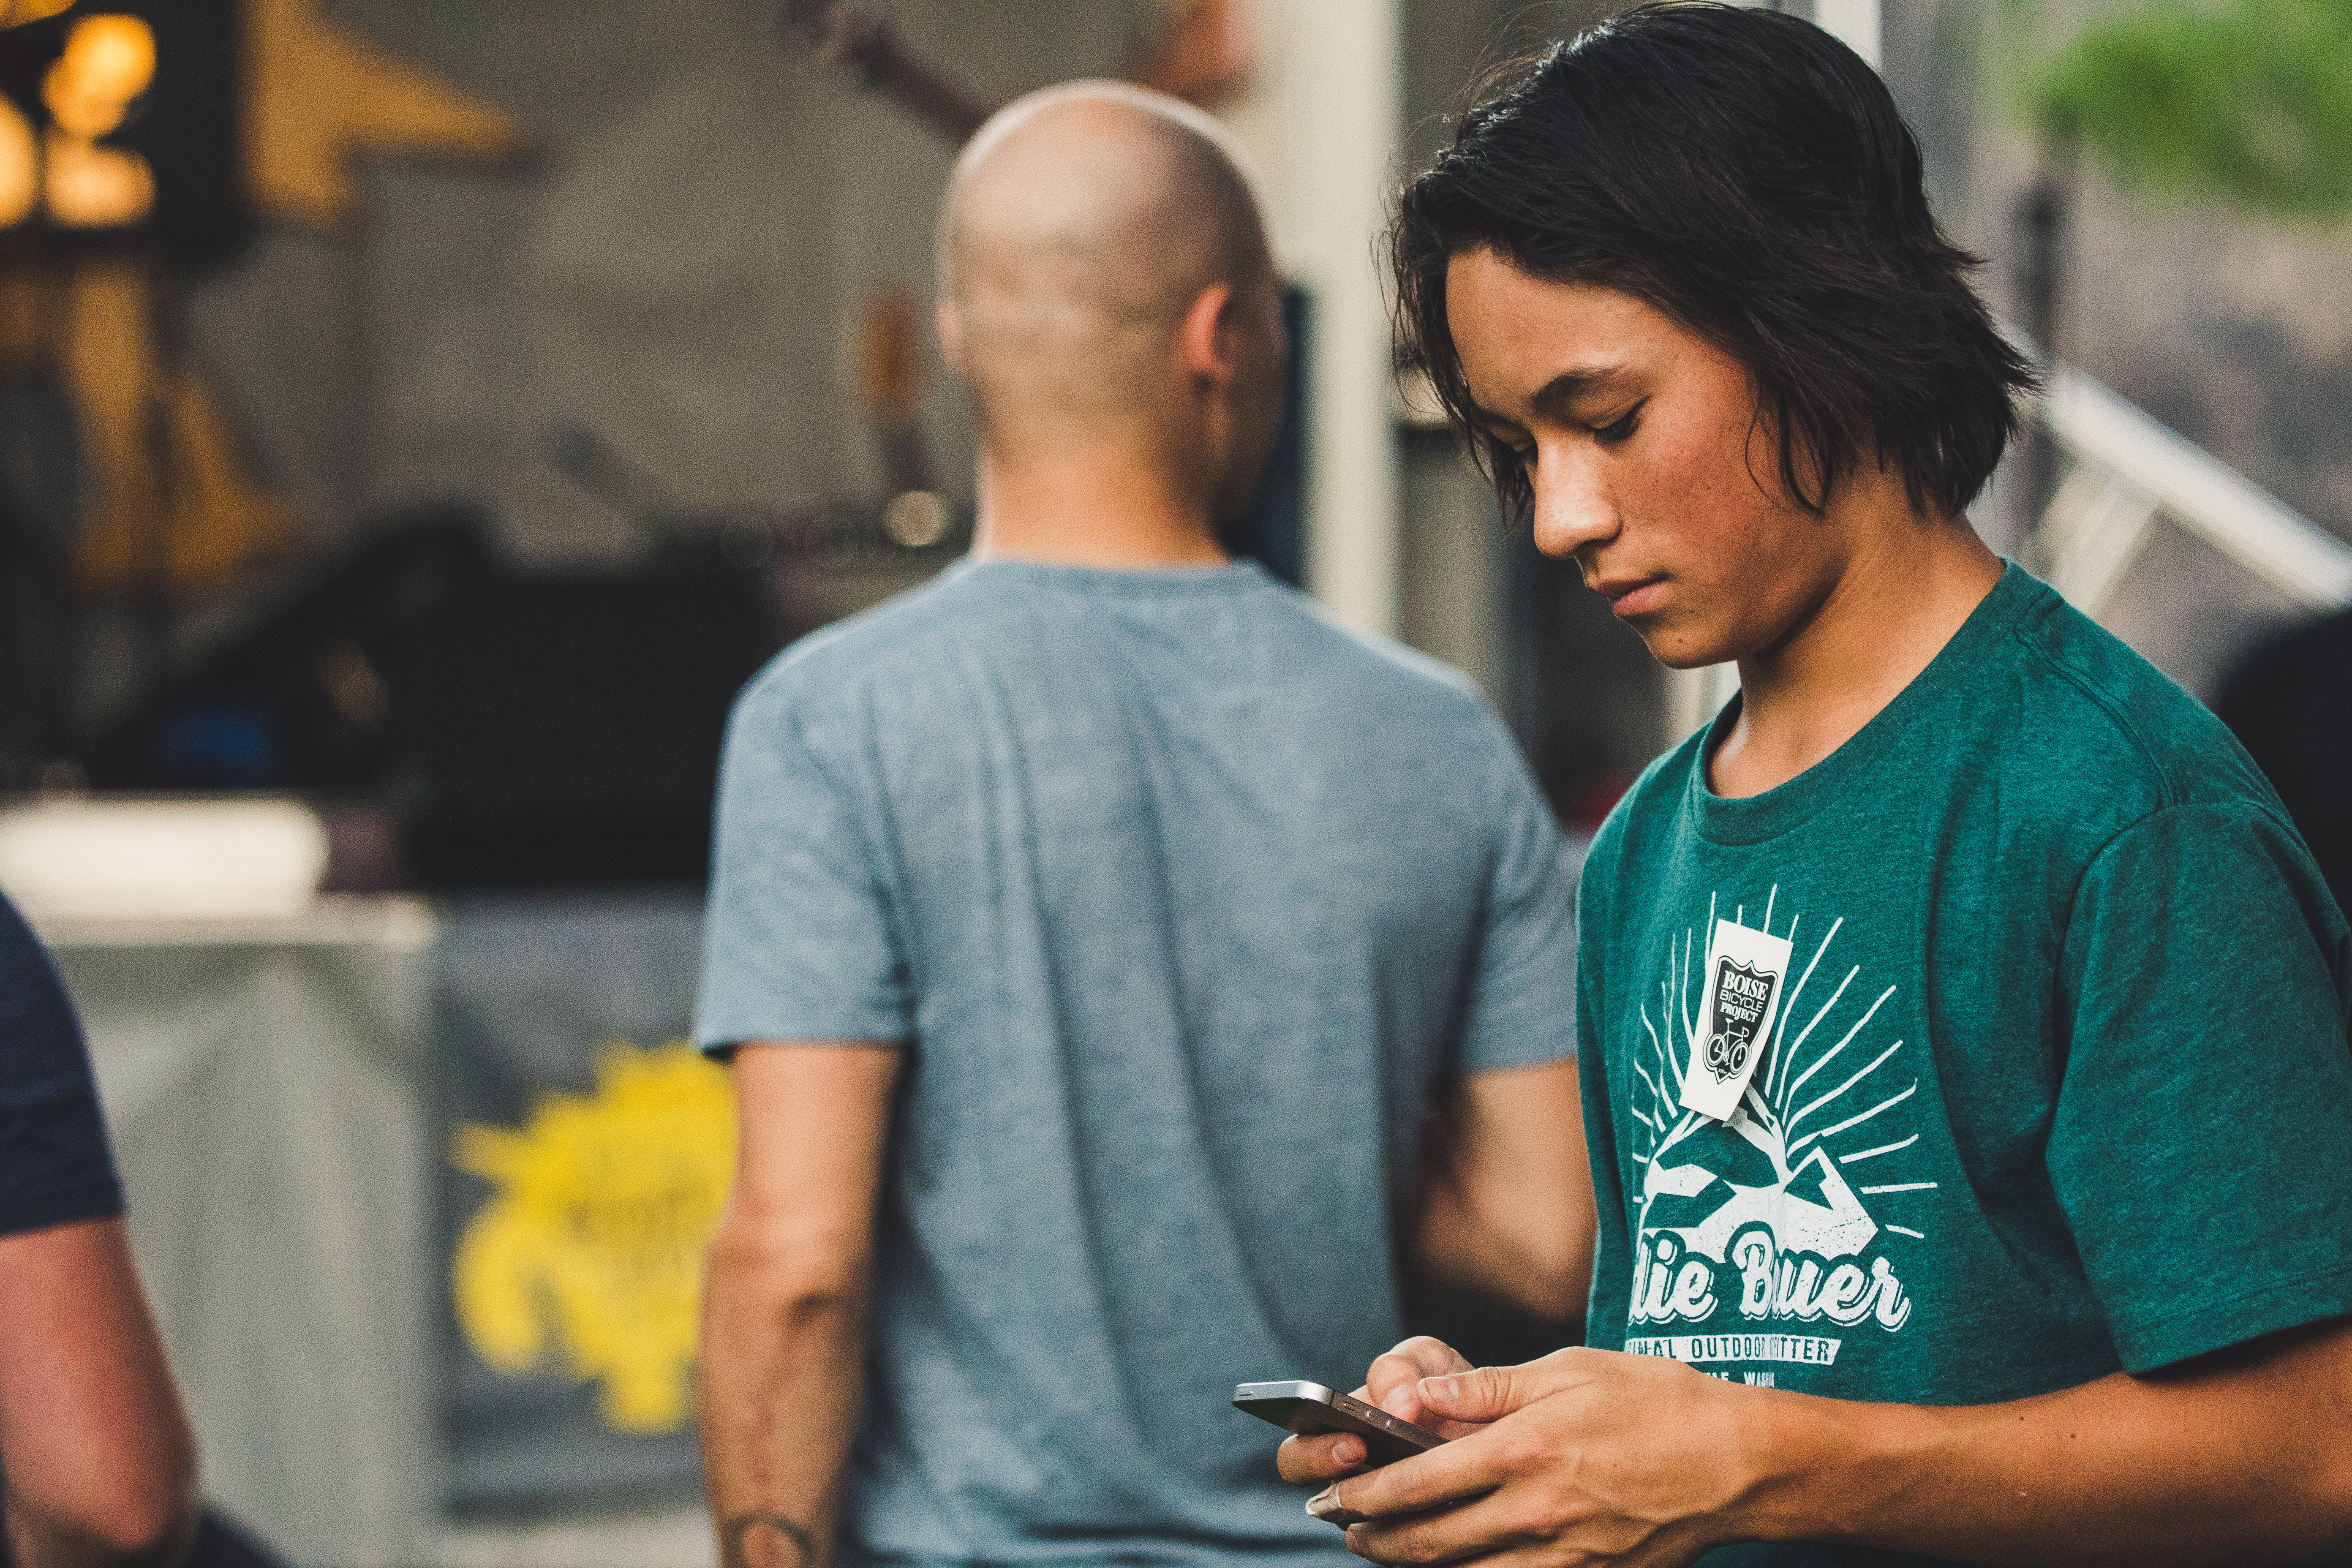 young teenager in green shirt looking down at phone